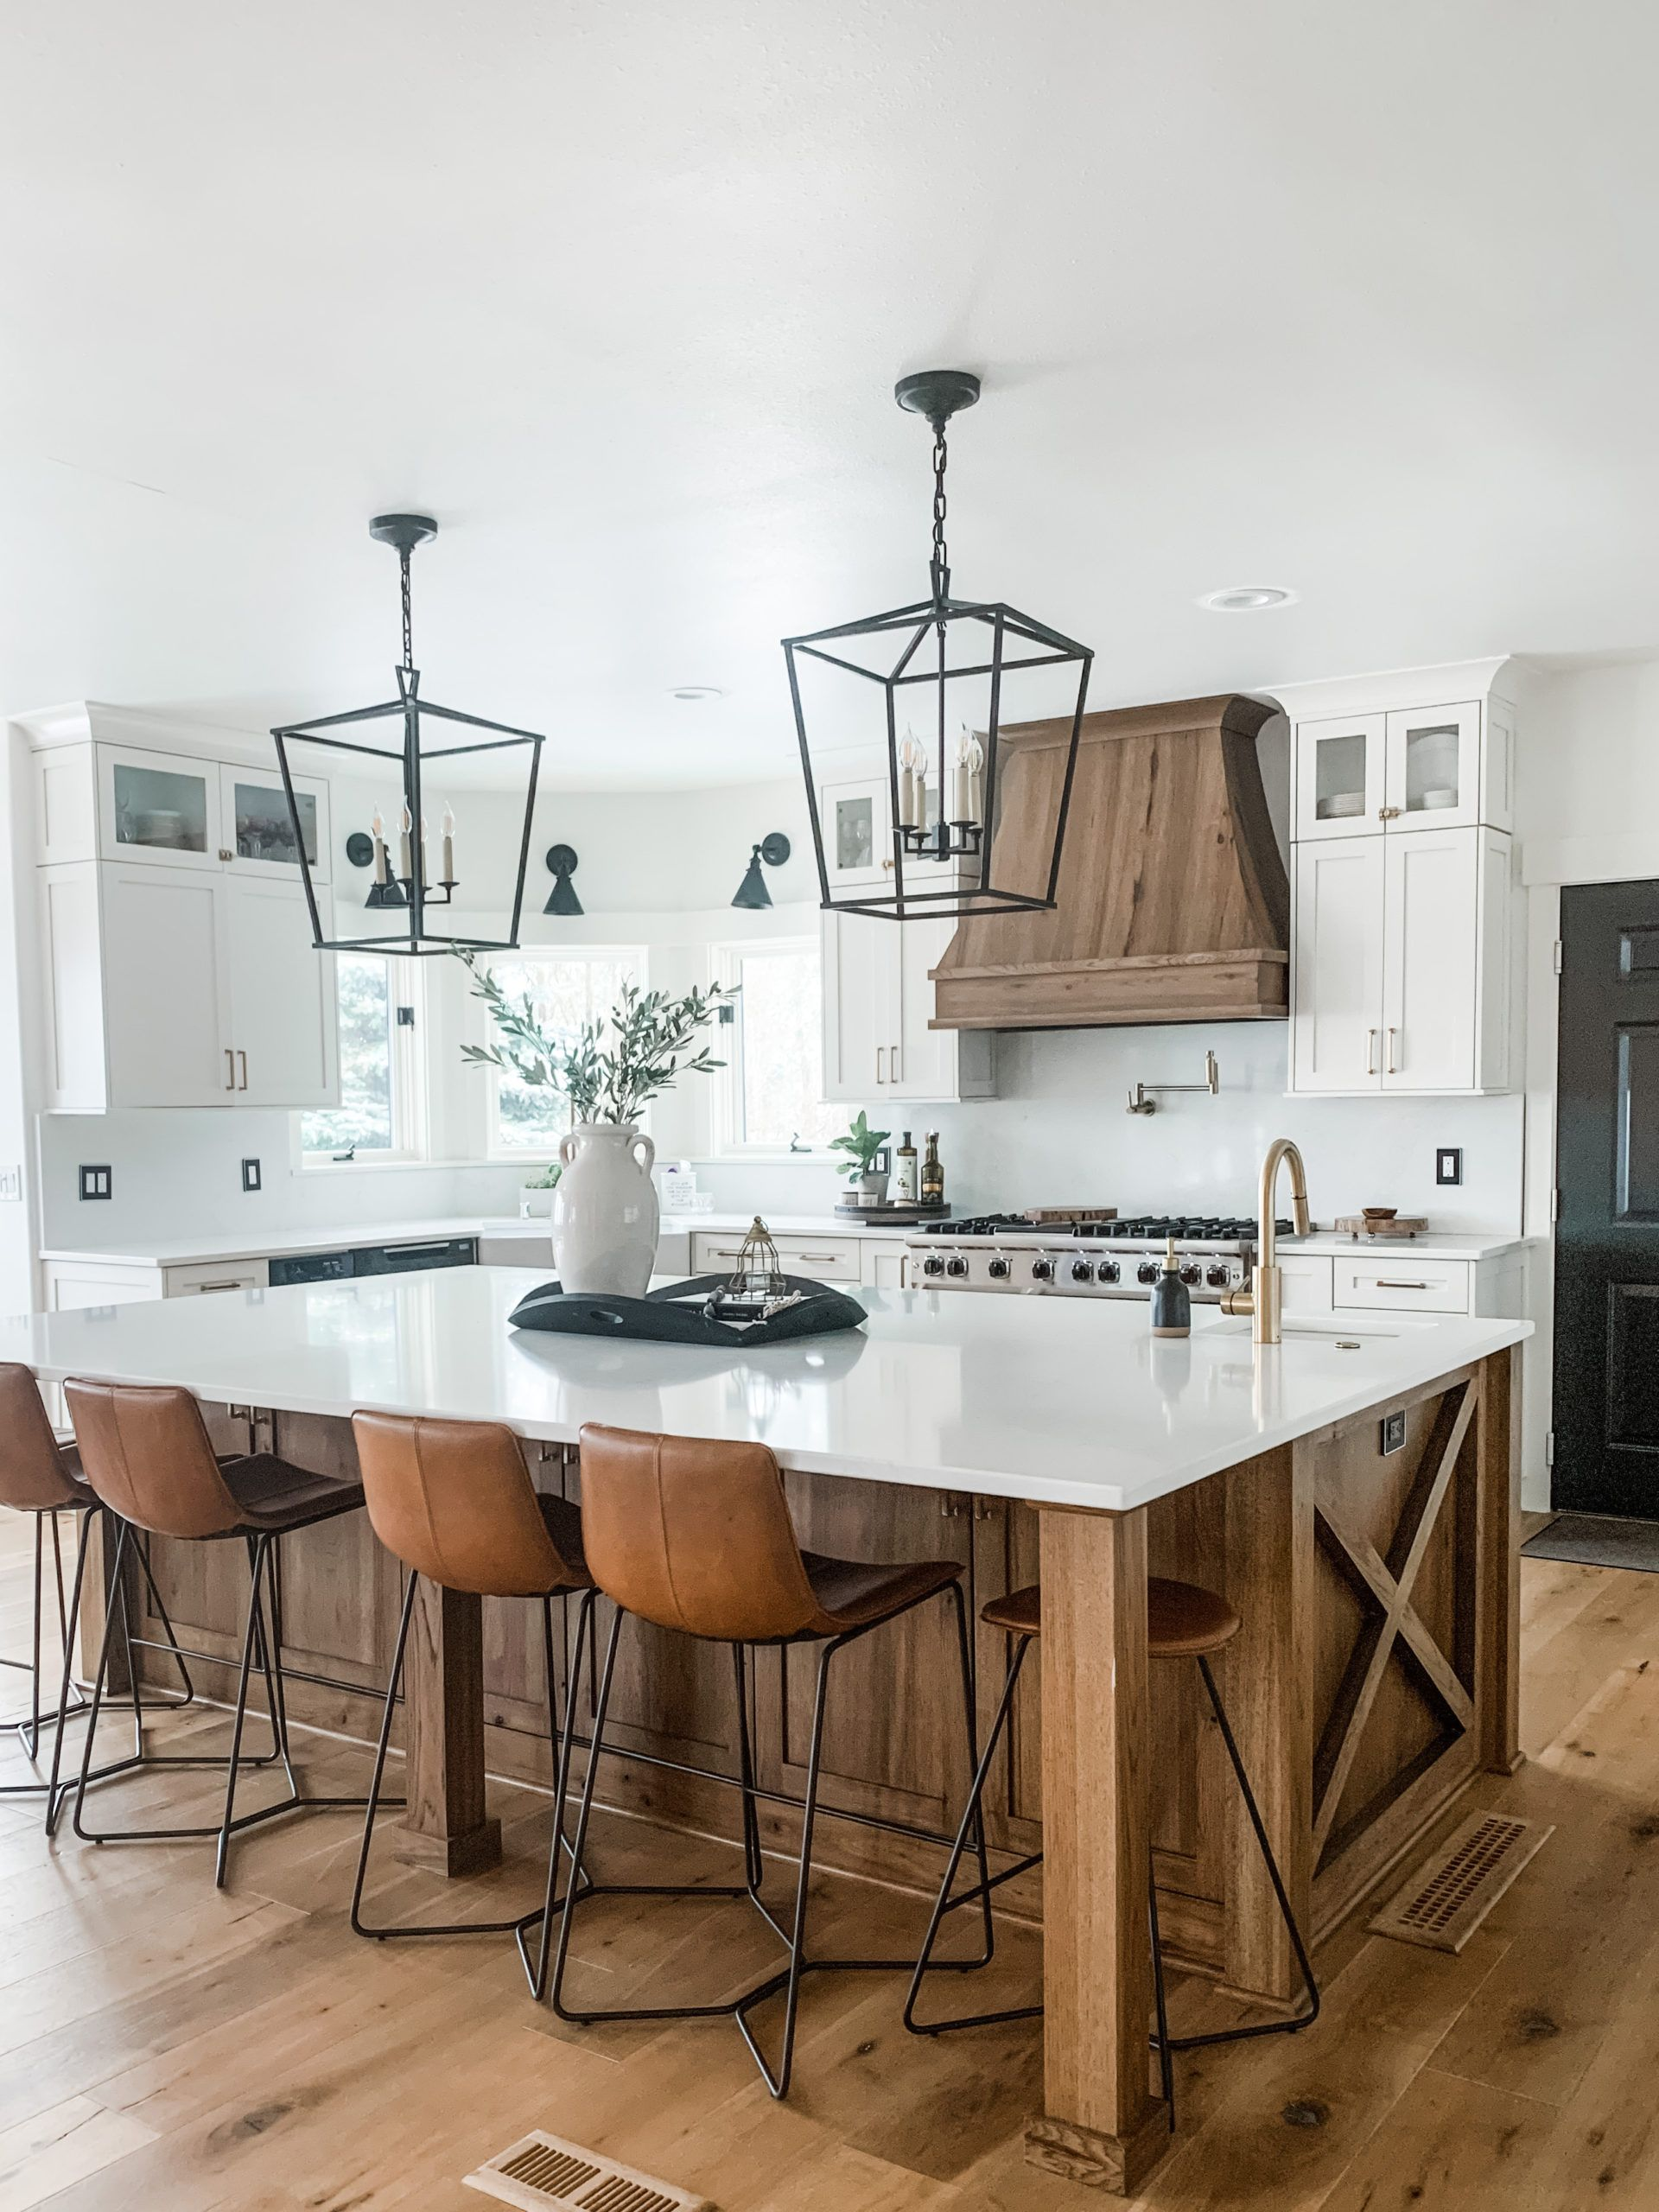 Modern Mountain Kitchen Remodel: The Big Island Takeover